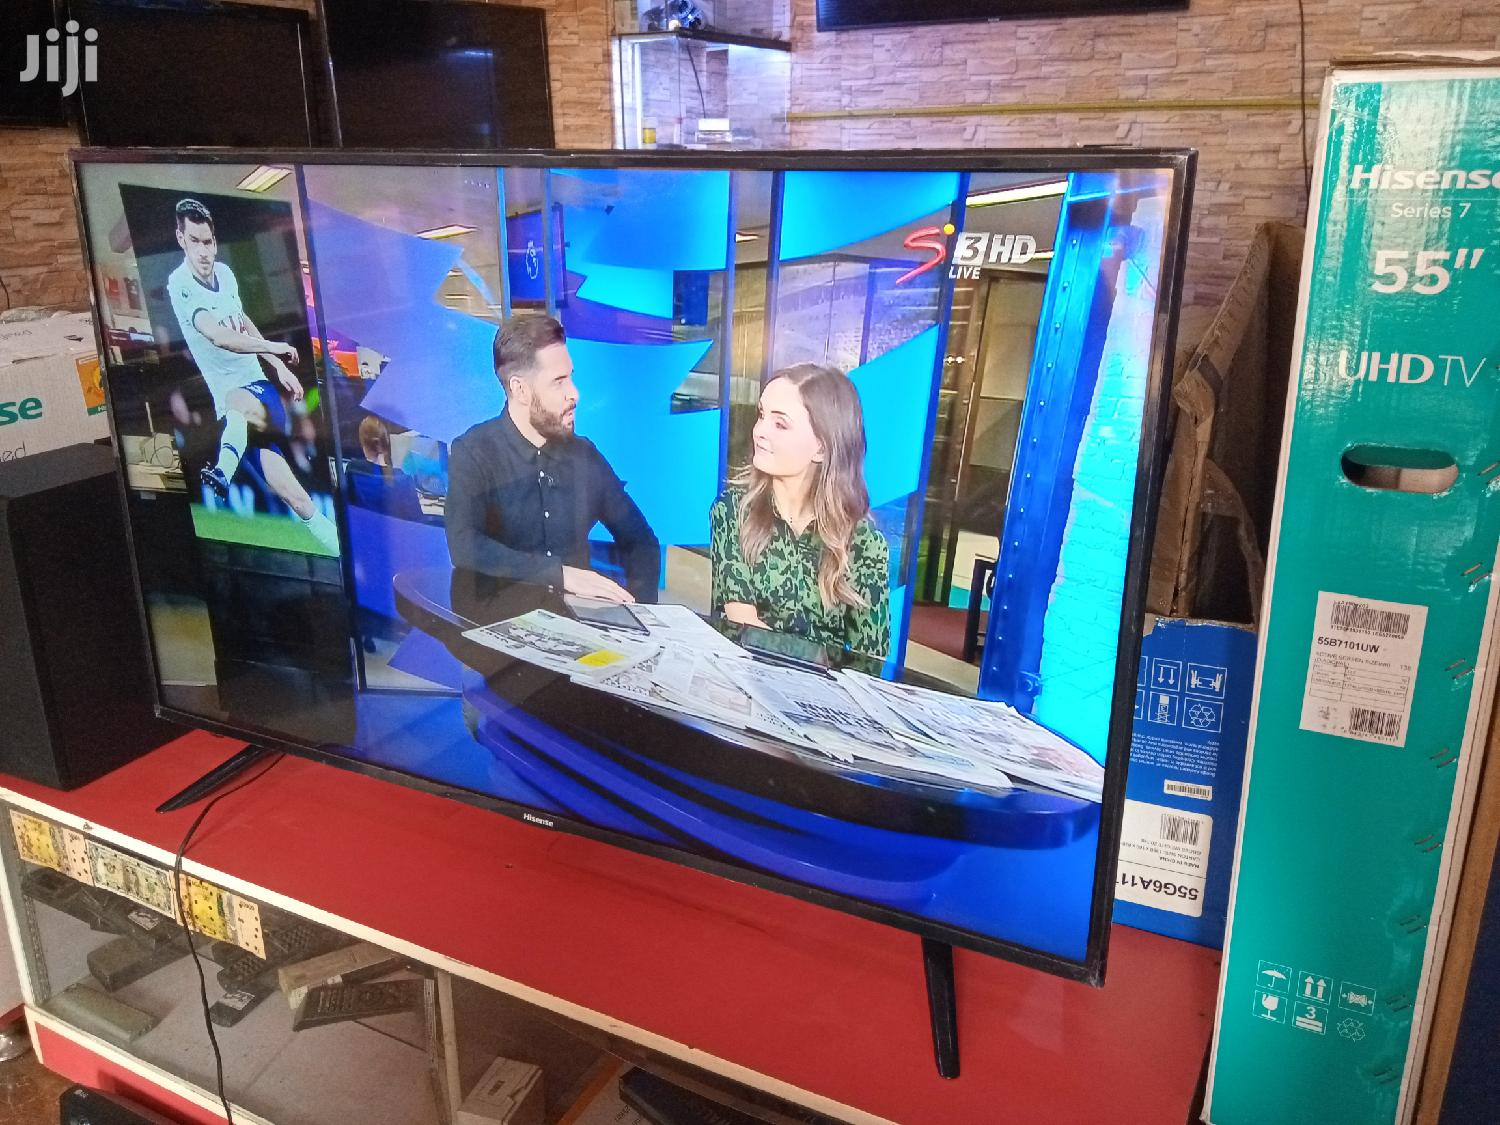 "Hisense 55"" Smart 4K UHD Ultra Slim Flat LED Tvs. Brand New"